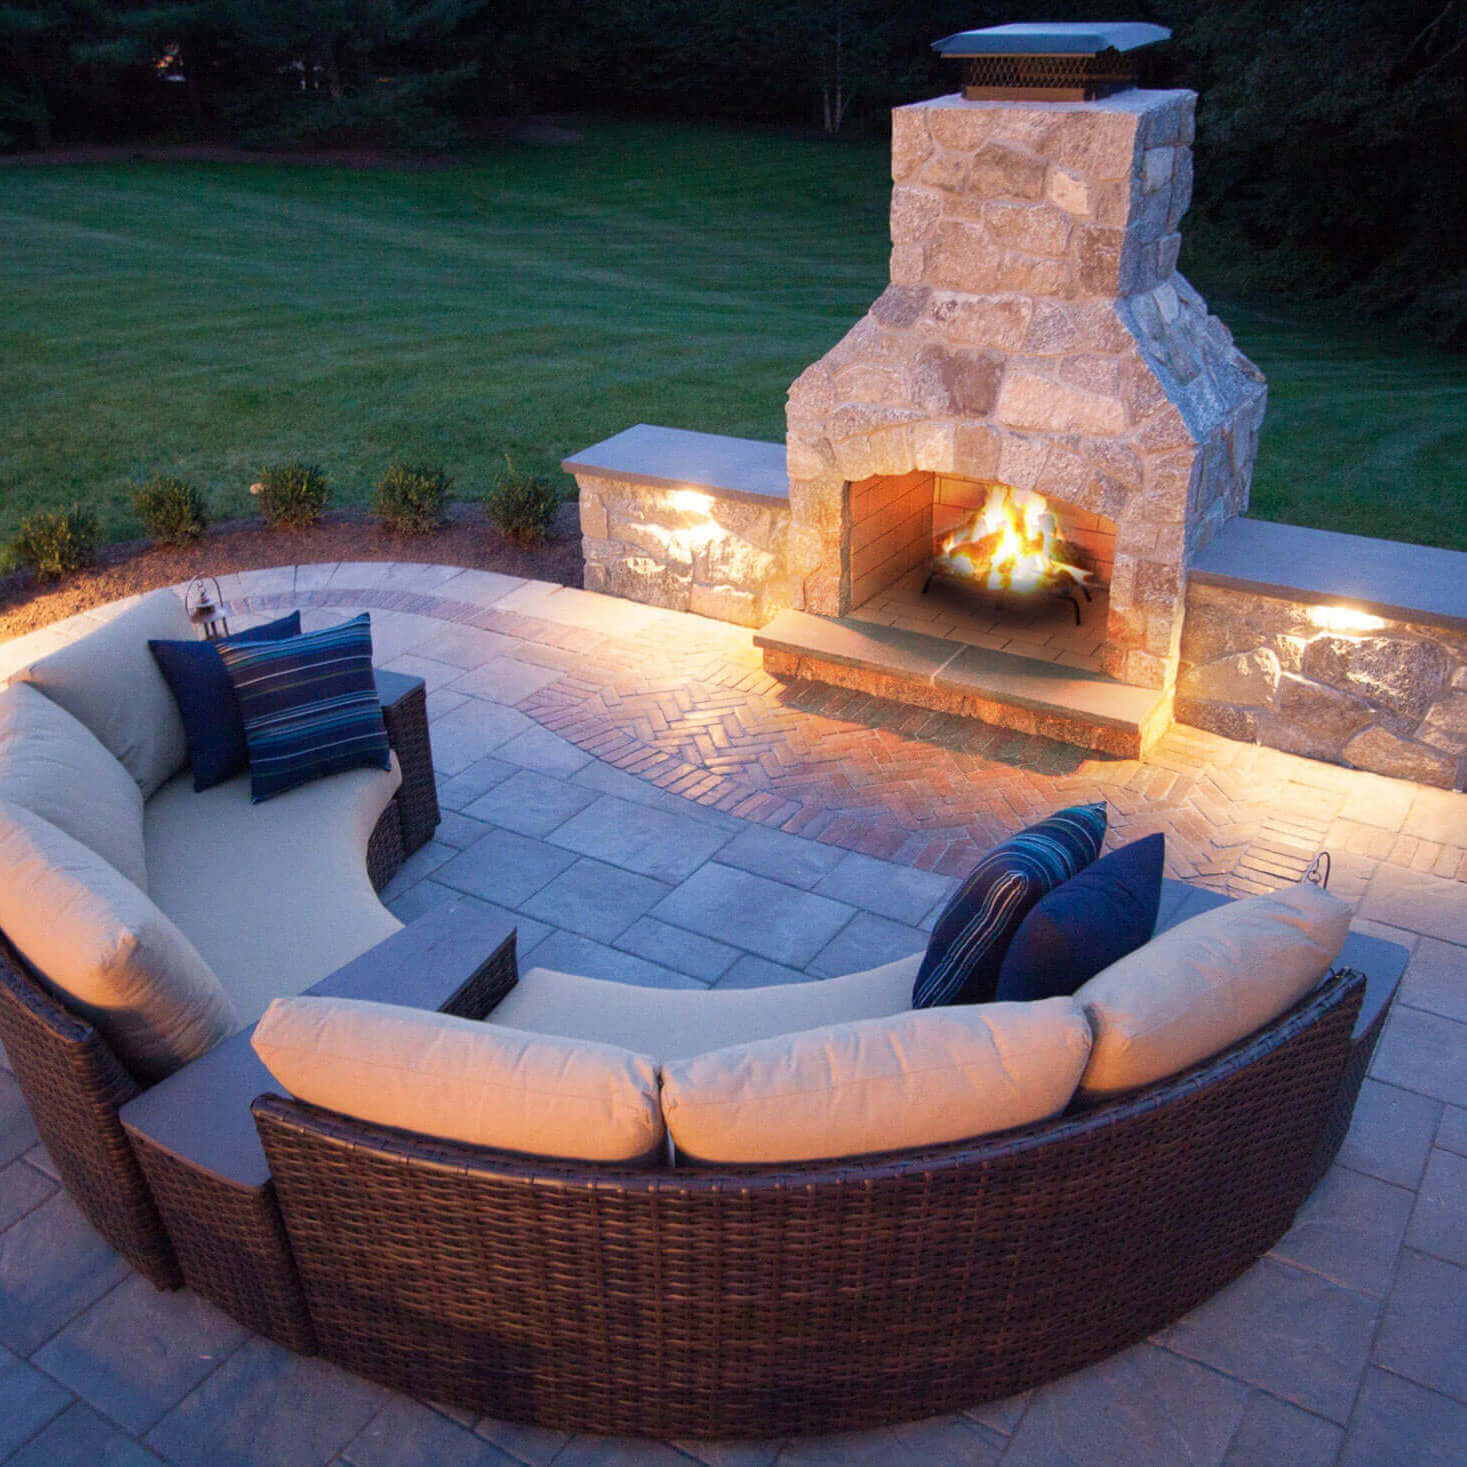 Stone Age Fireplace with seating